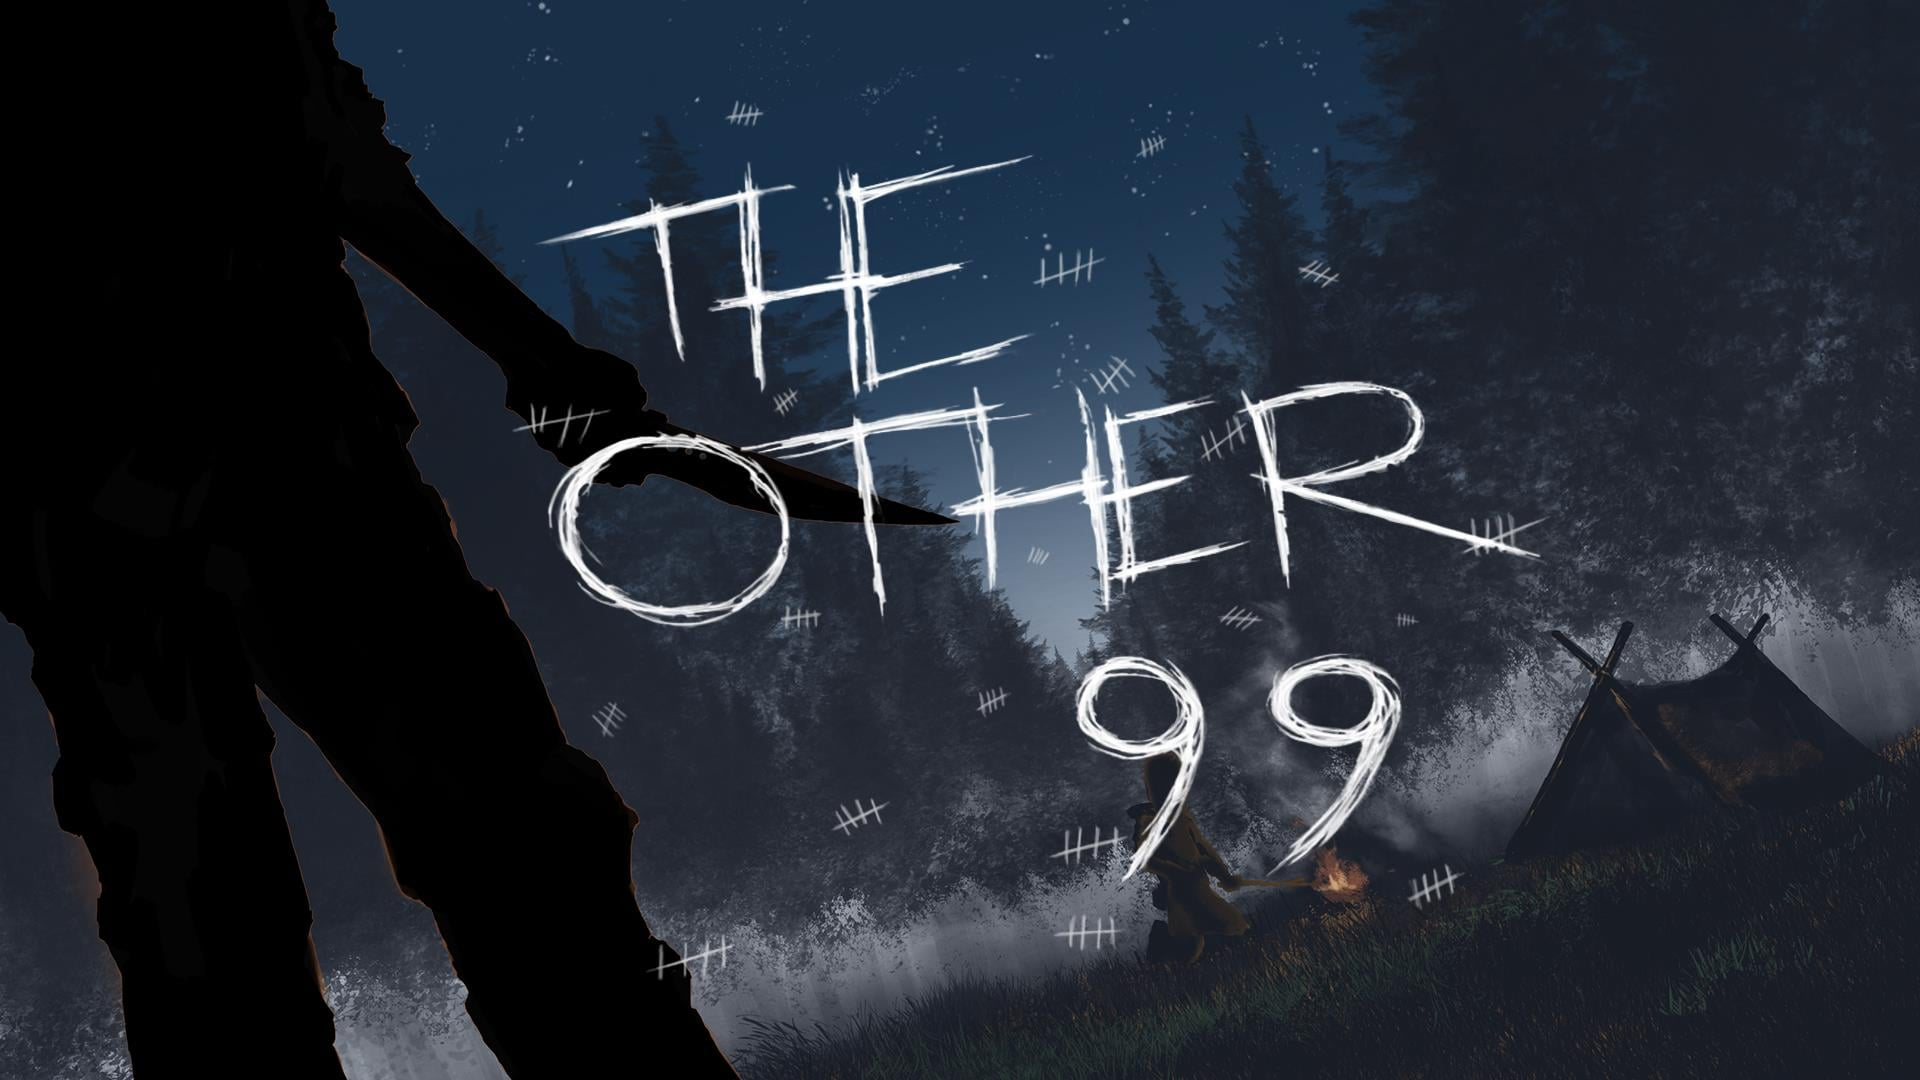 Other 99 logo